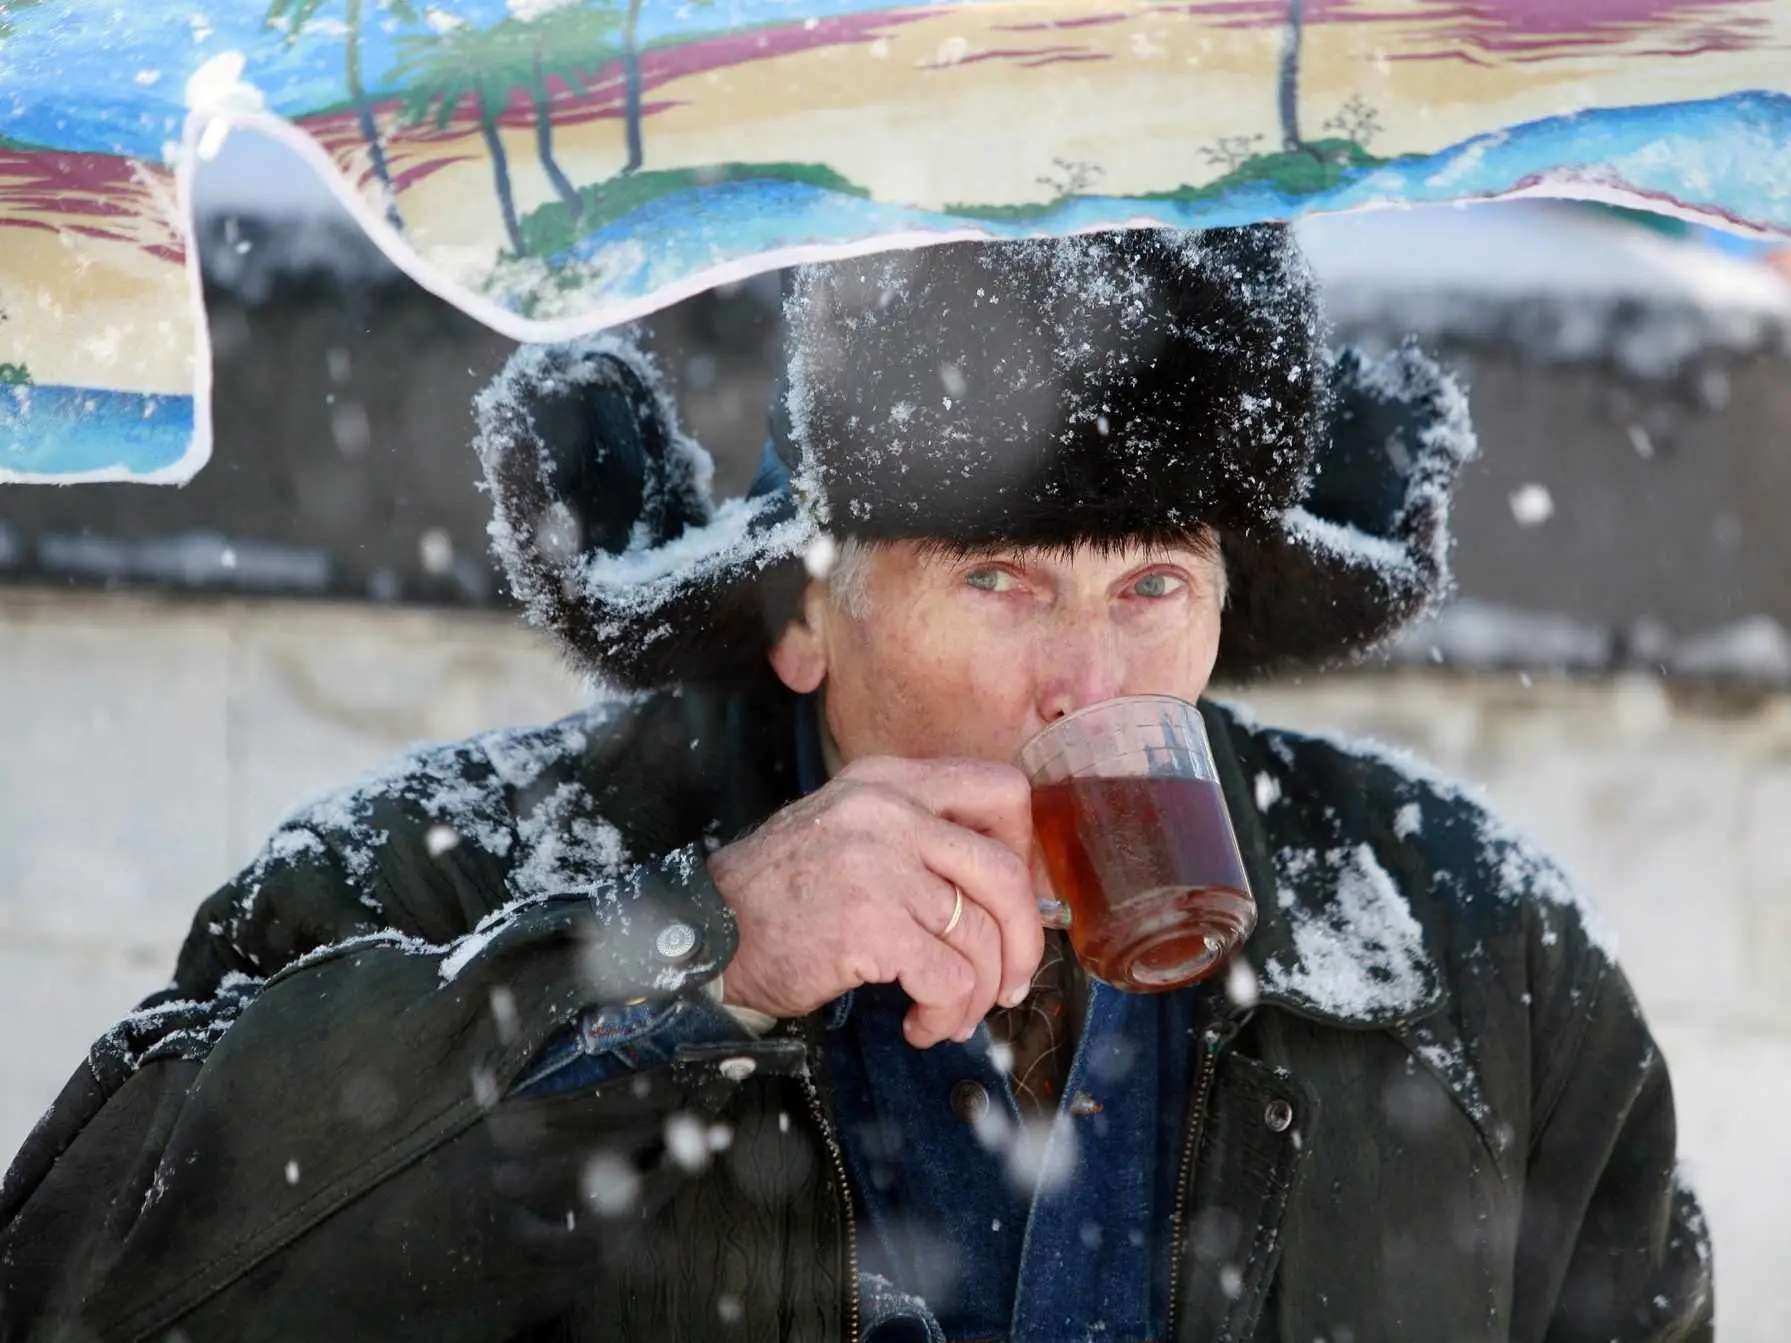 On average, Russians drink six times as much tea per person per year as Americans.